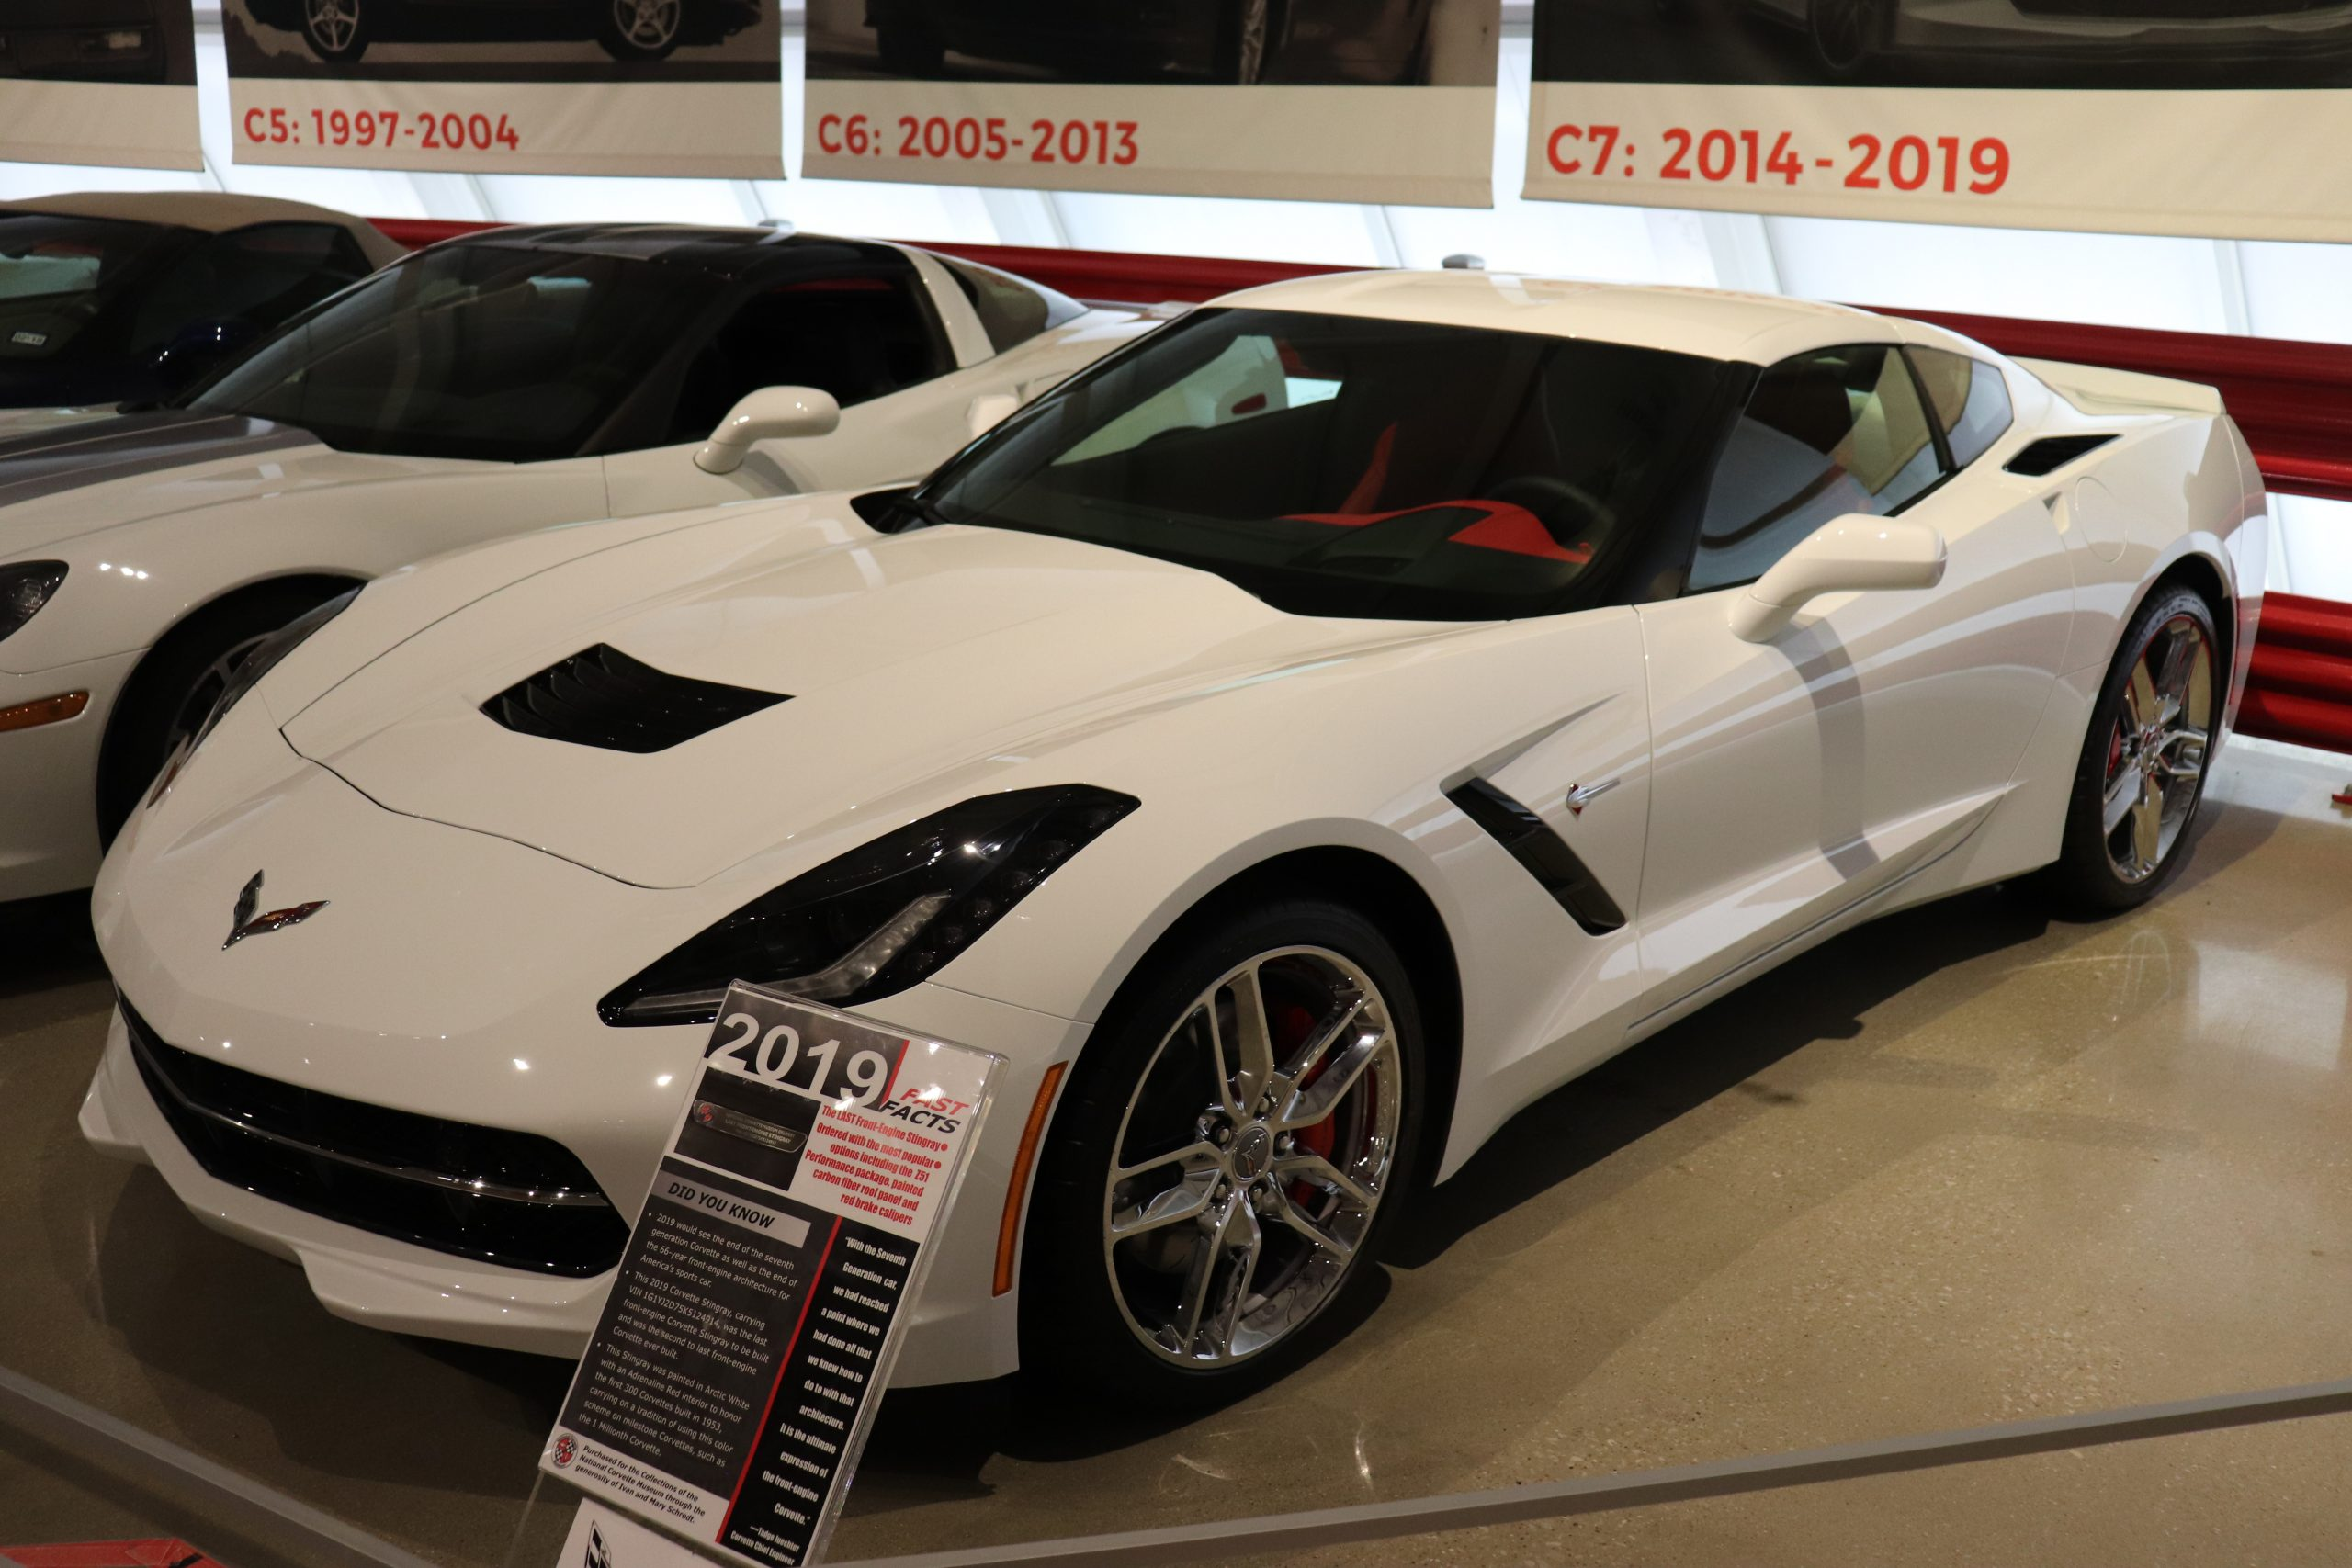 C7 Corvette on display at the NCM